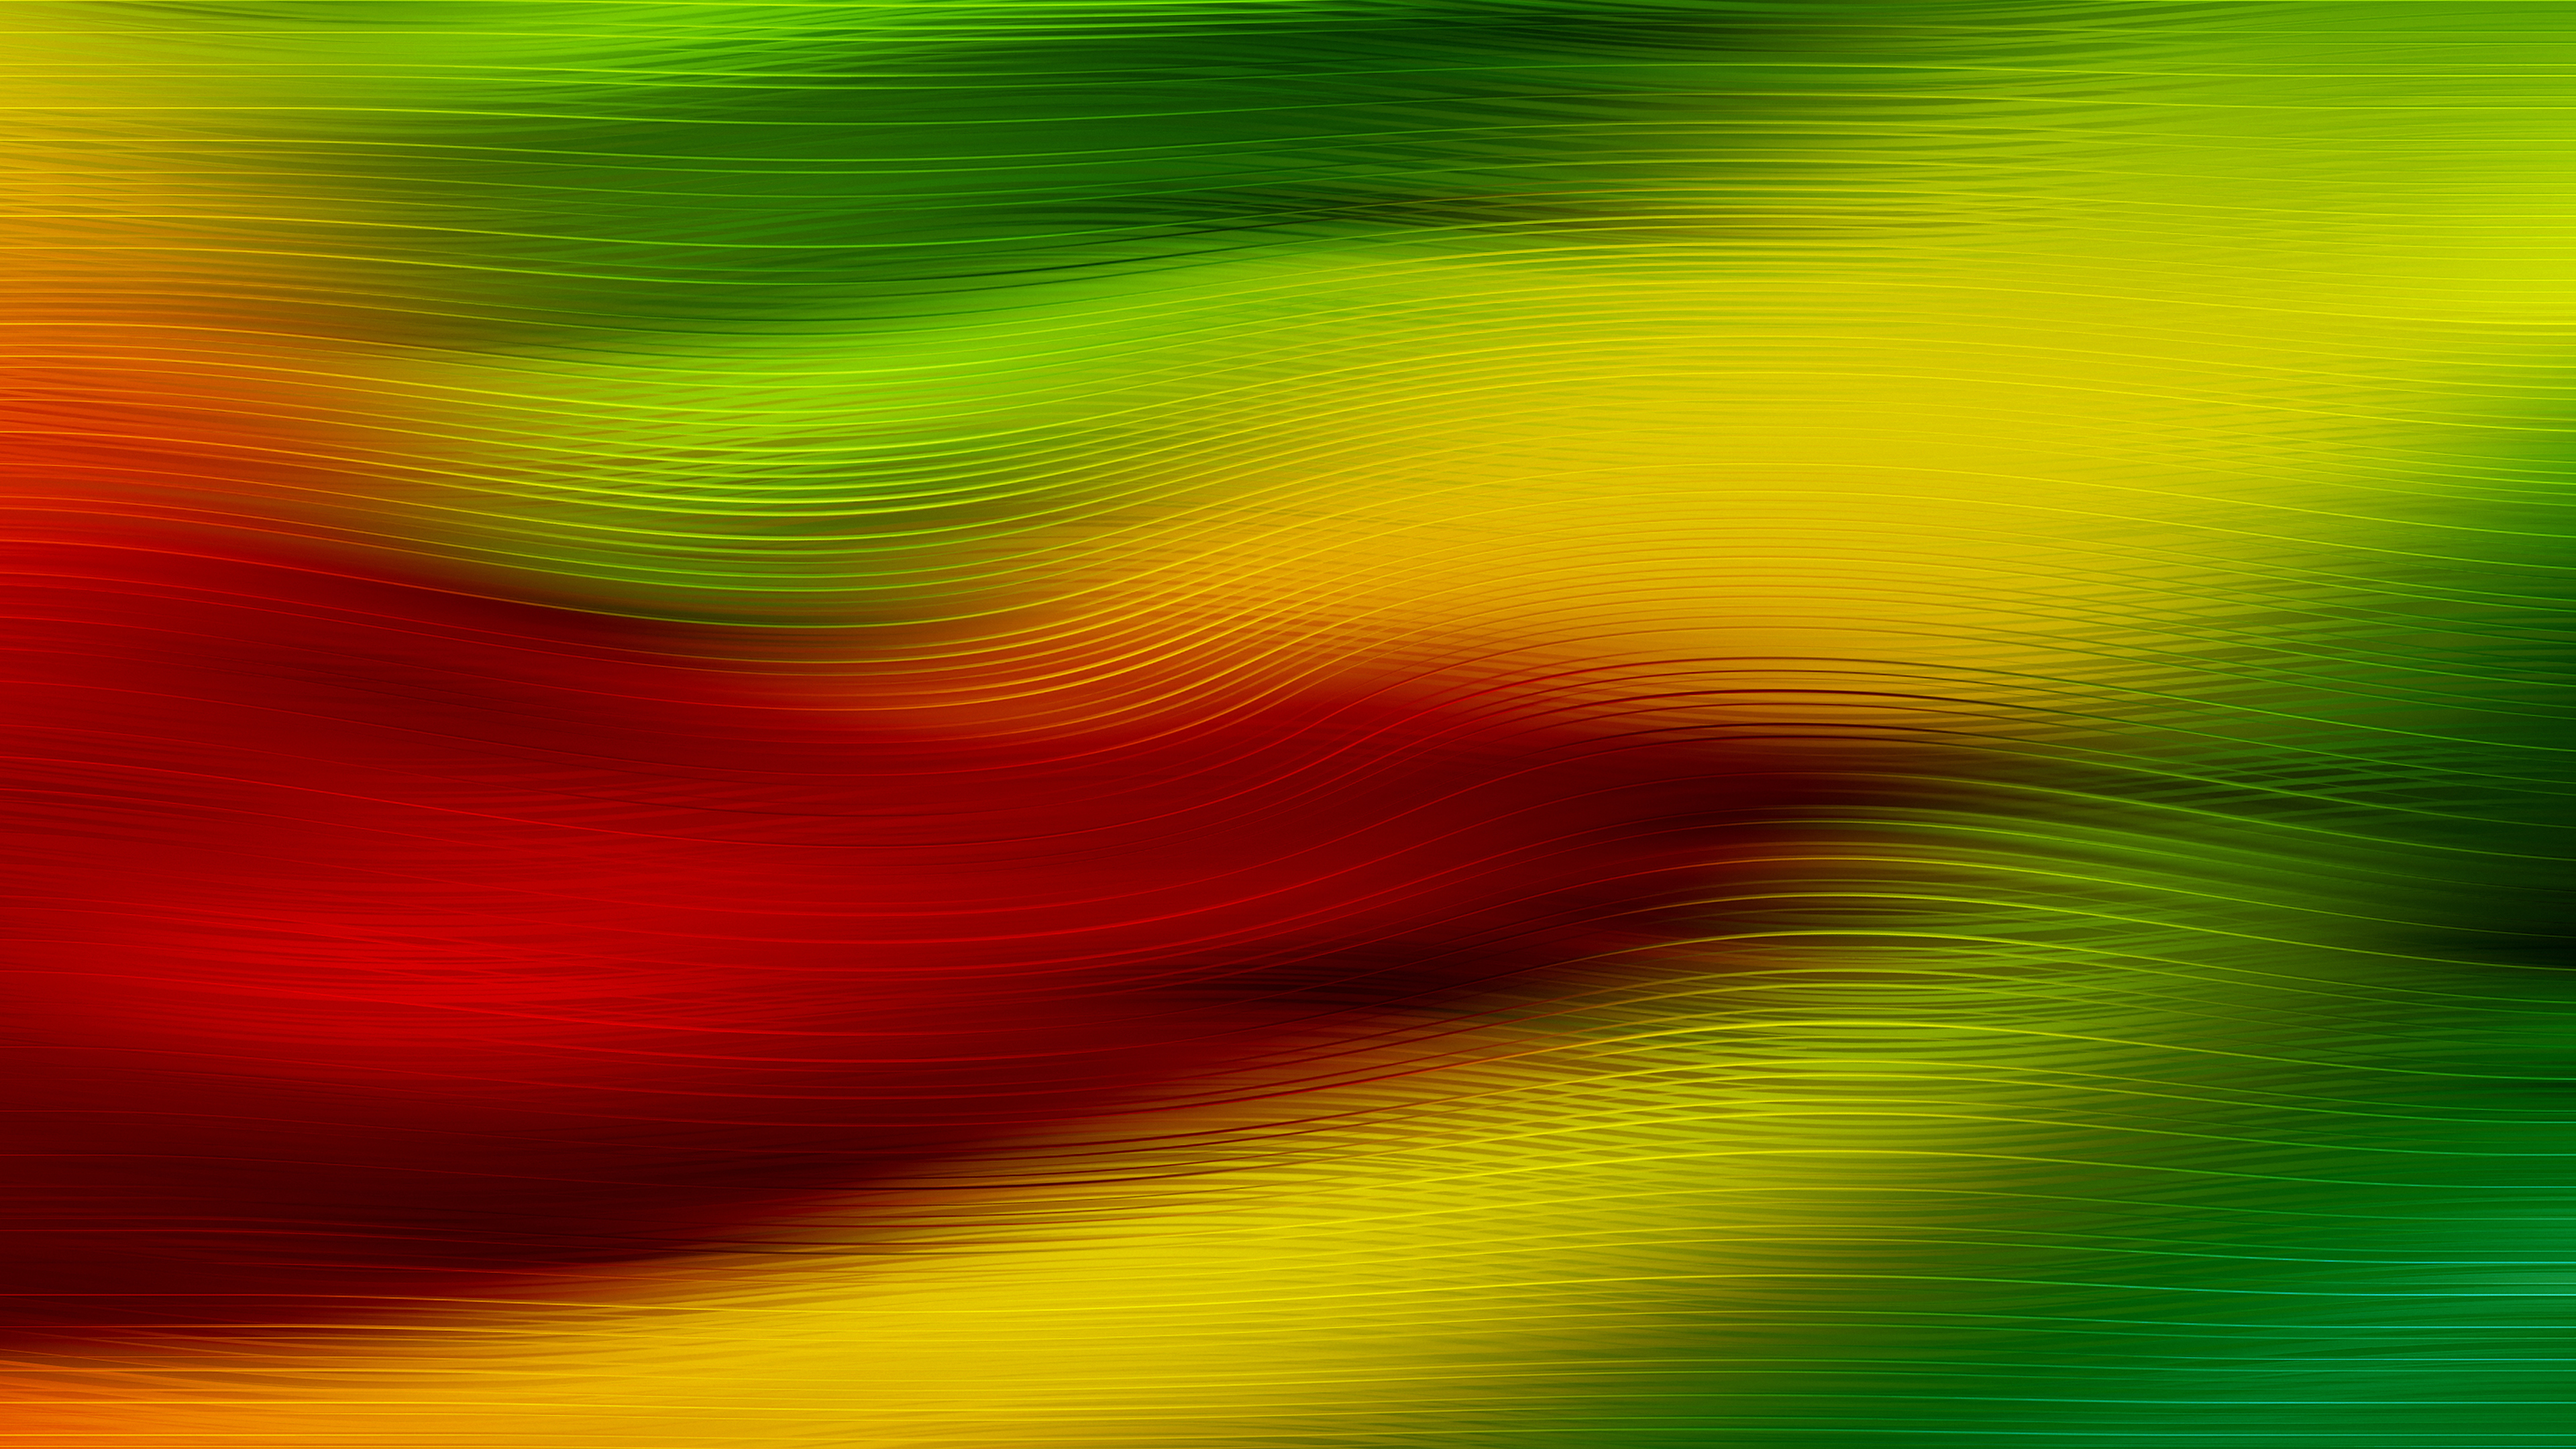 4k Flow Rasta Wallpaper Hd